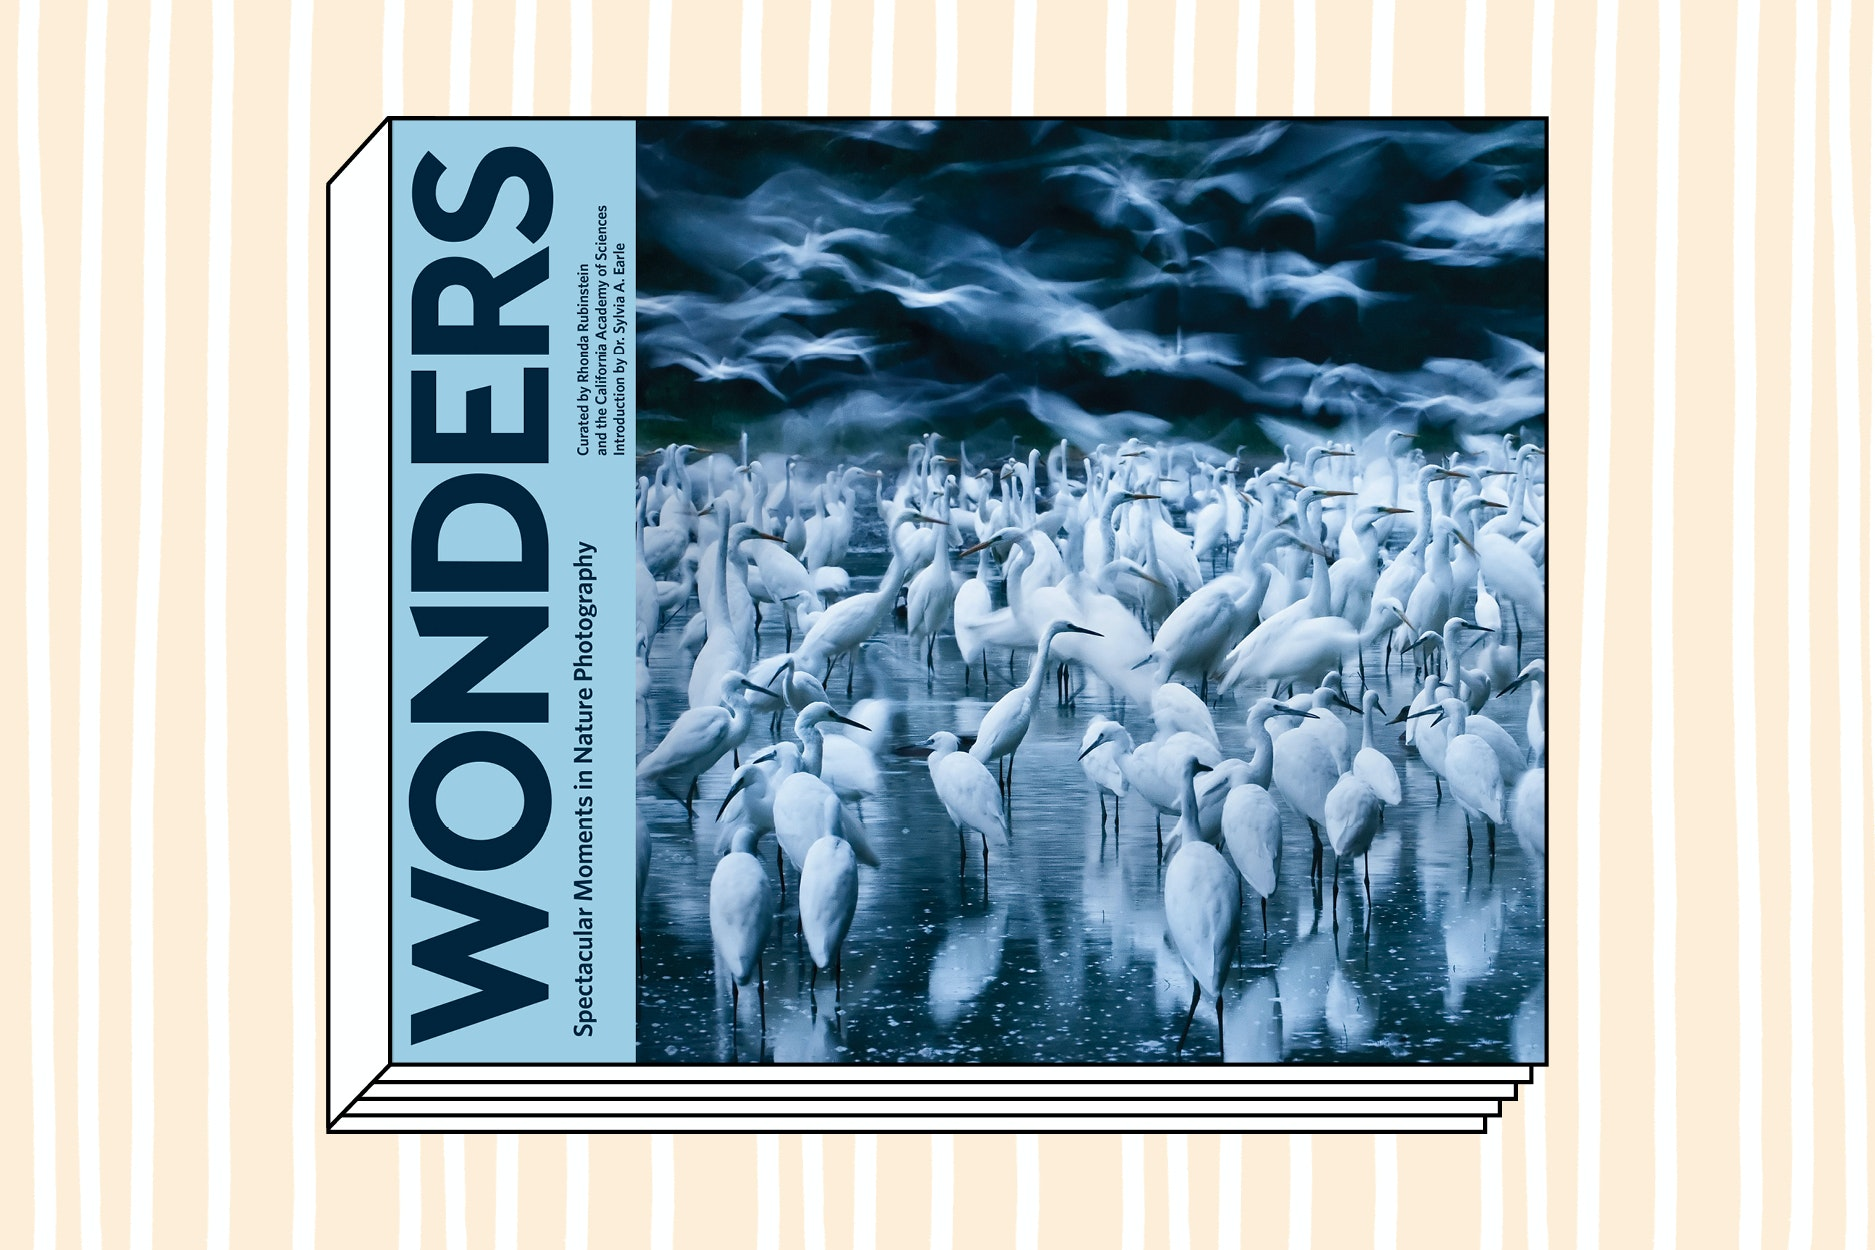 Wonders: Spectacular Moments in Nature Photography (Chronicle Books, 2018)